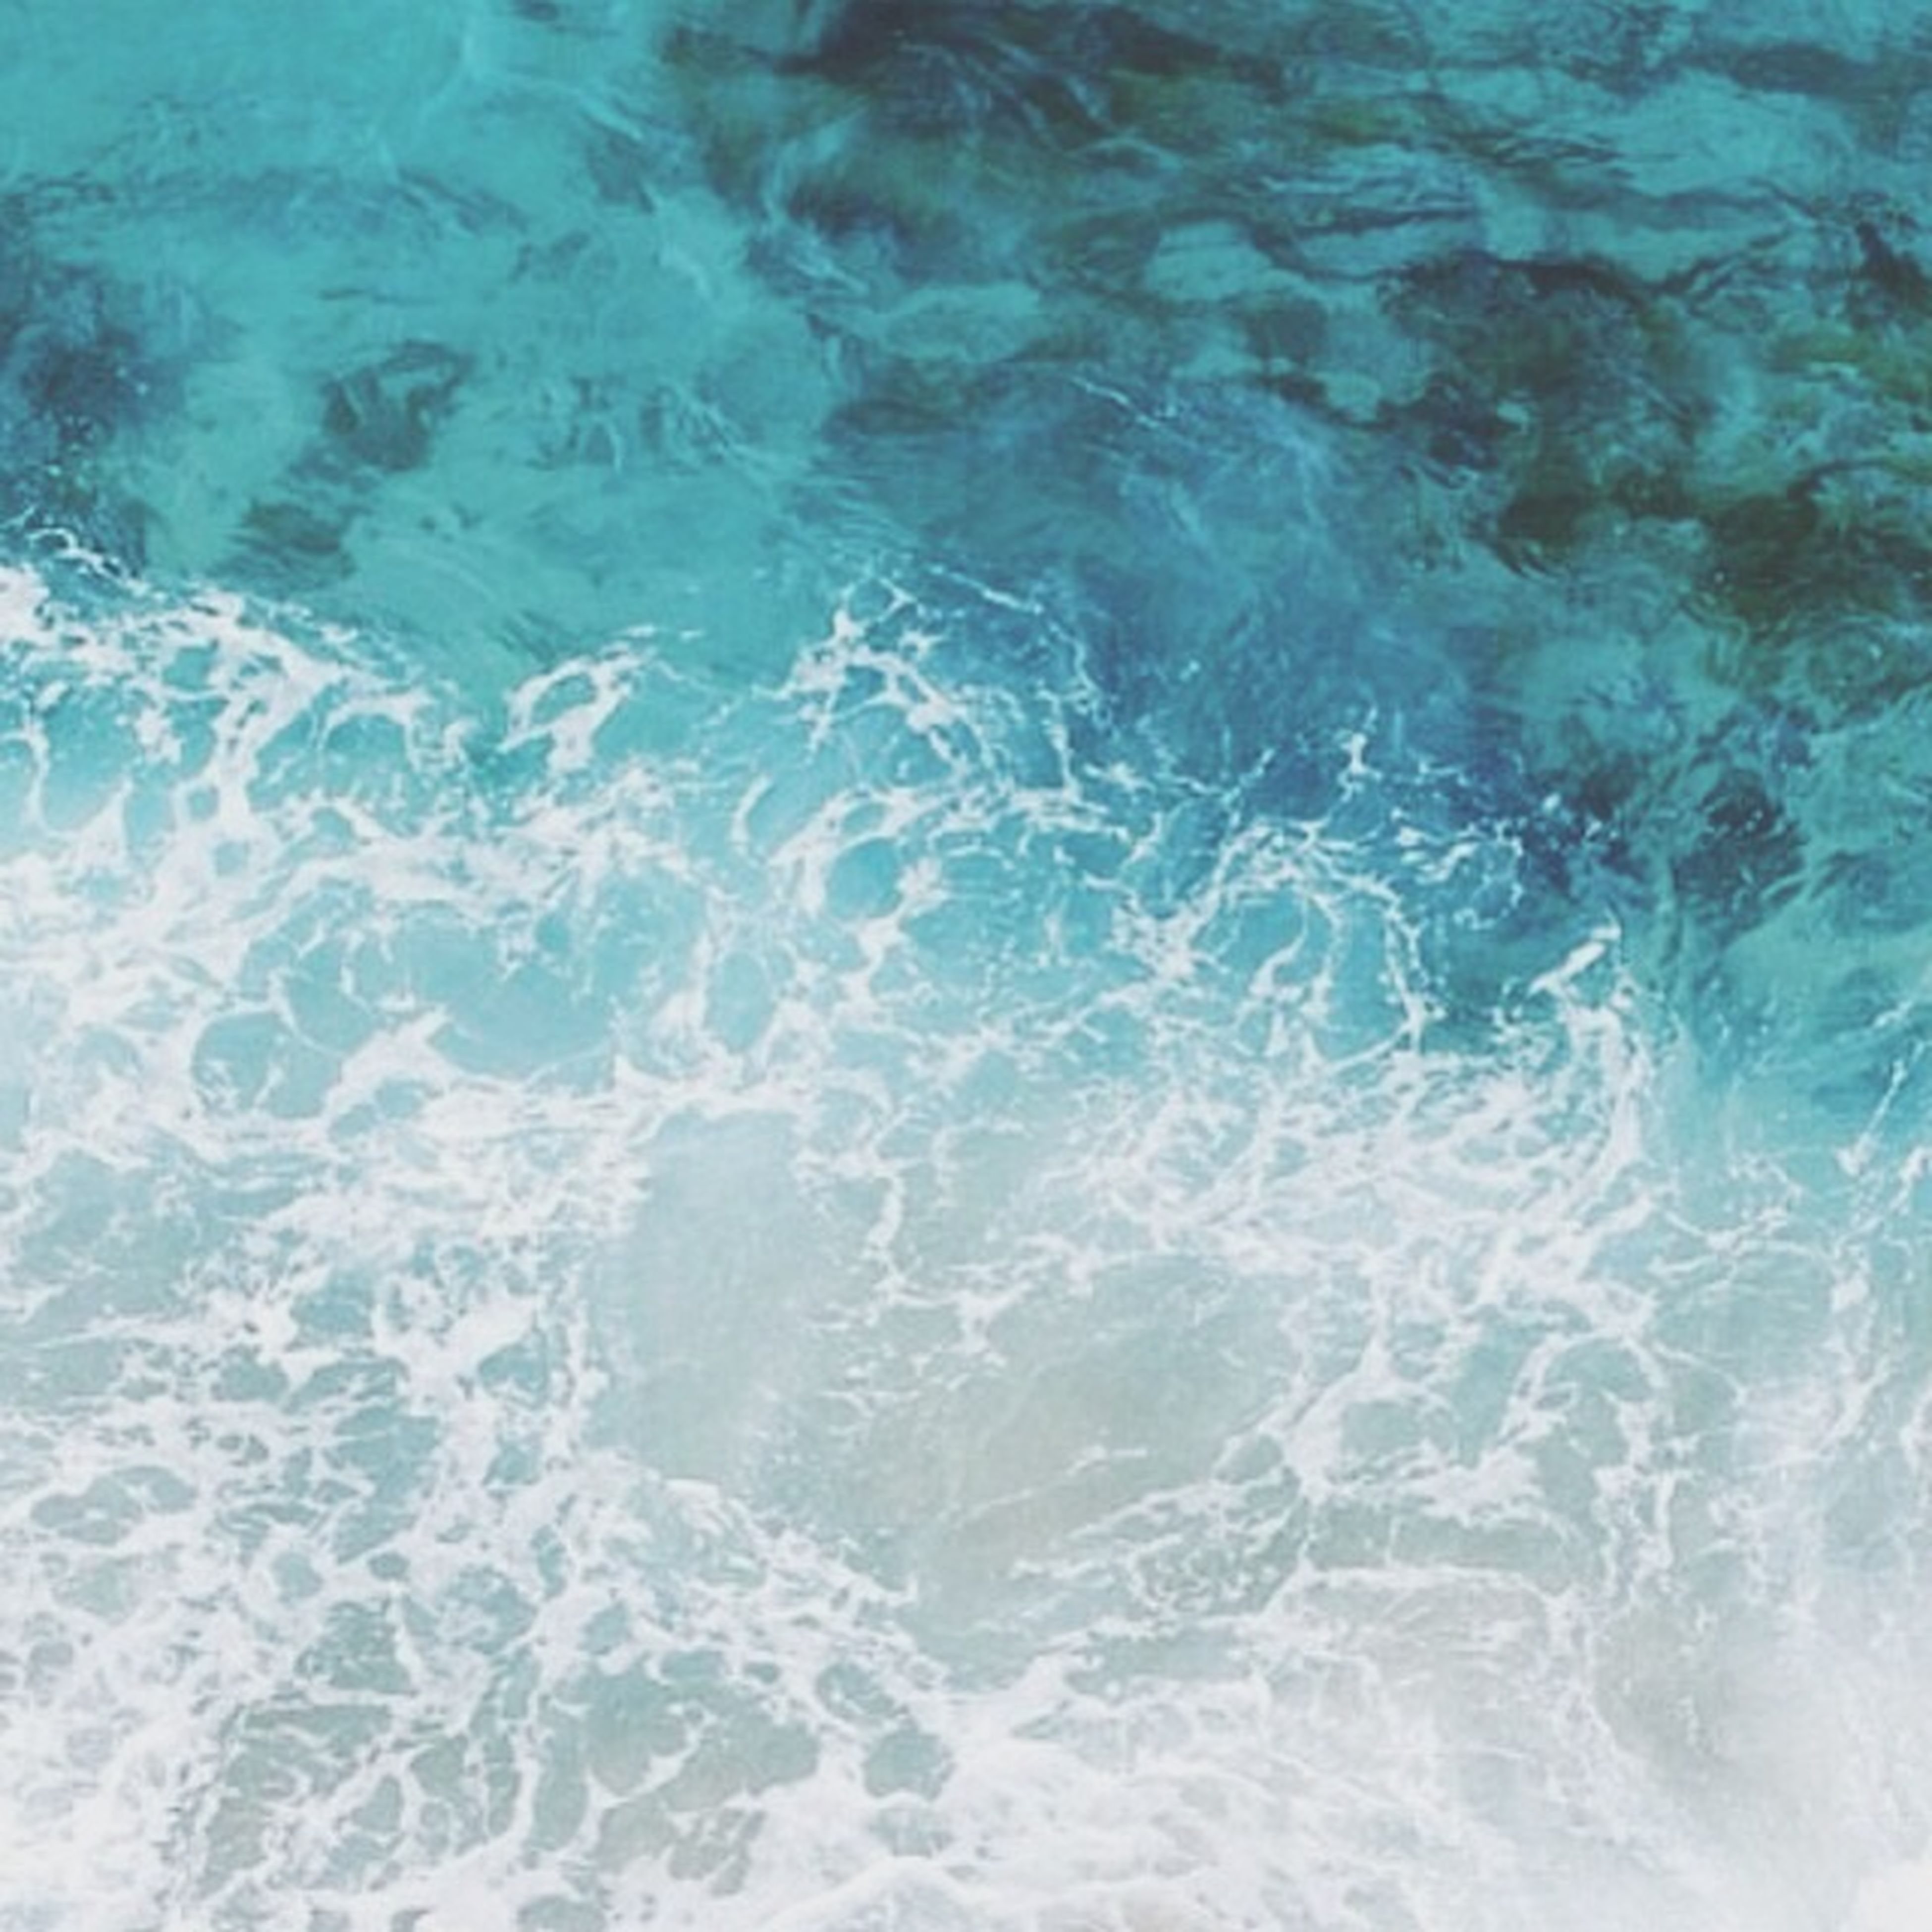 water, waterfront, rippled, full frame, backgrounds, high angle view, sea, nature, blue, beauty in nature, motion, swimming, water surface, day, tranquility, no people, outdoors, turquoise colored, wave, sunlight